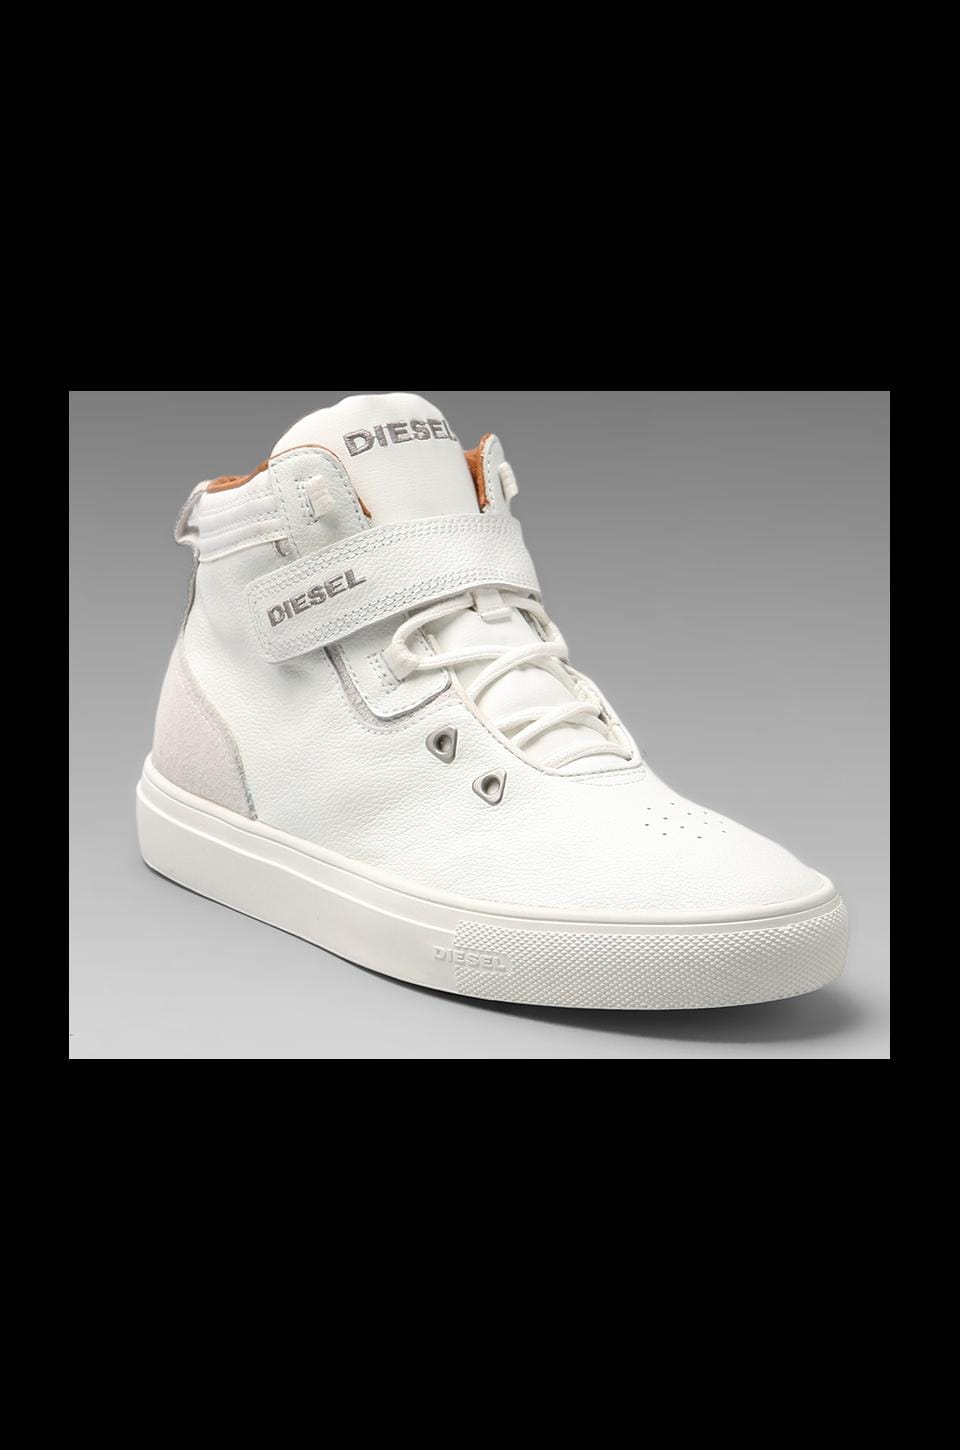 Diesel Radically Modern in White